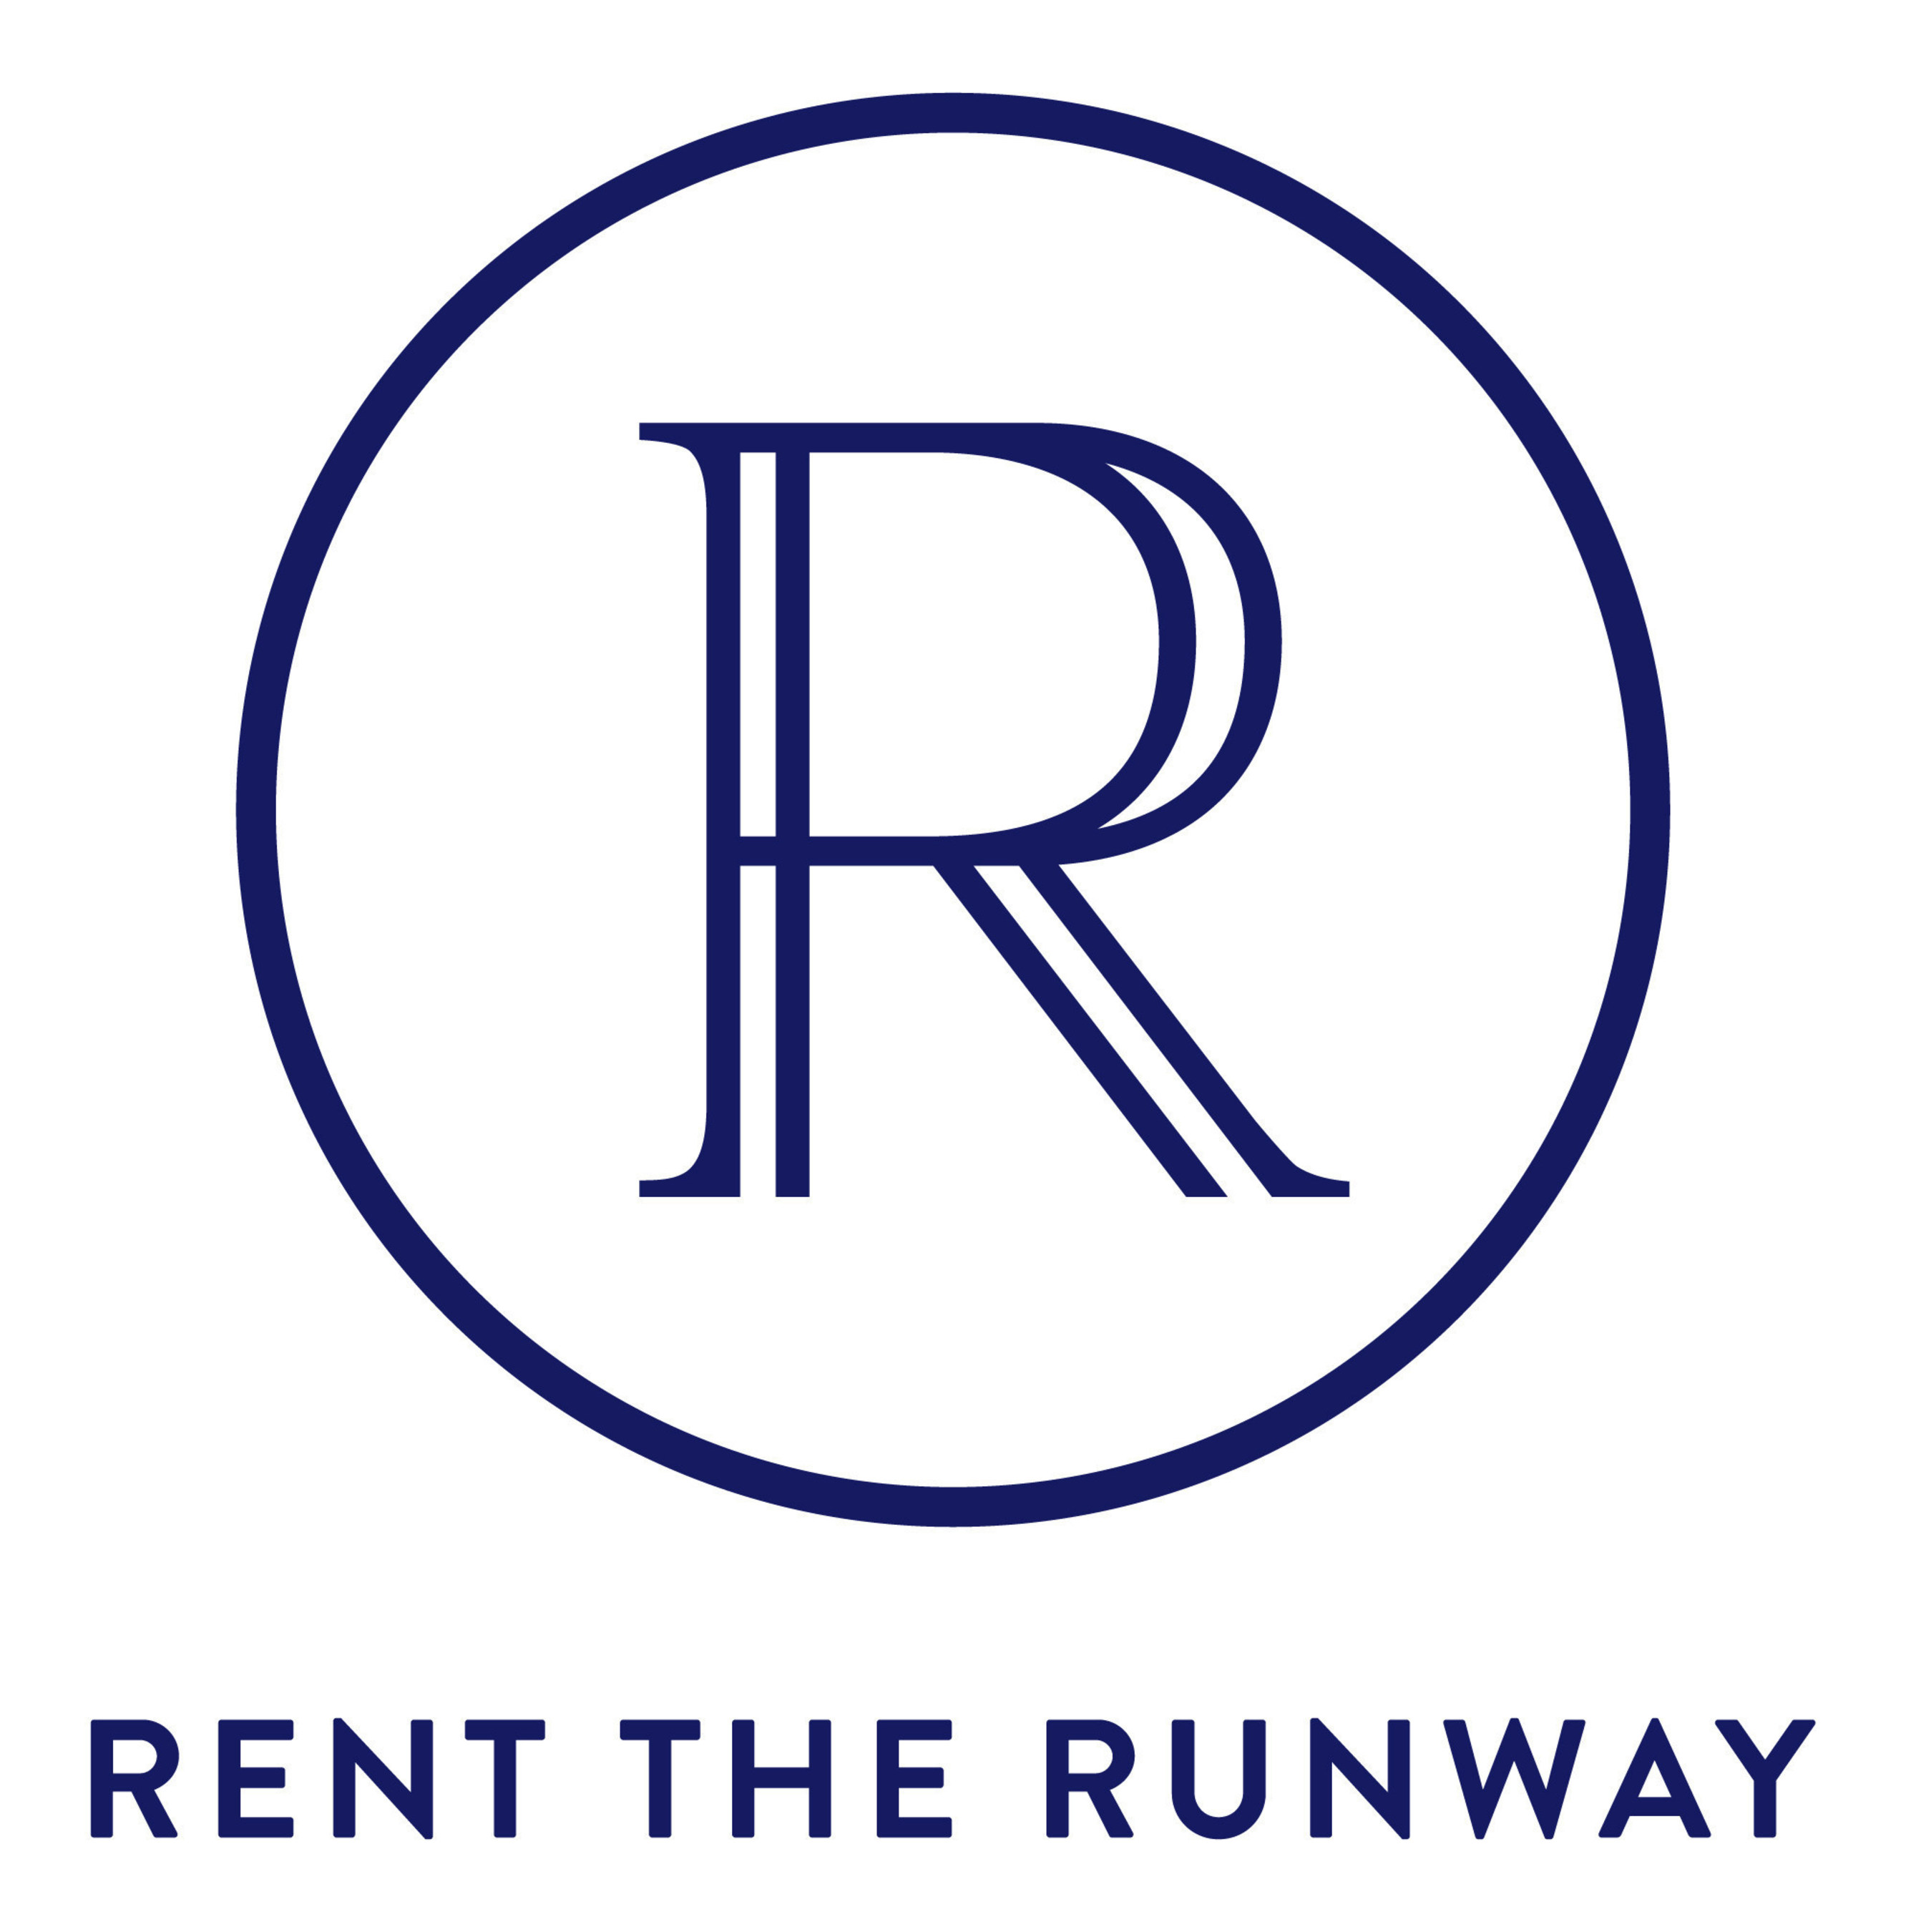 Mar 23, · A year ago, I discovered Rent the Runway's Unlimited service. For a little over $ a month, I could have access to a very expensive wardrobe. For a little over $ a month, I could have.